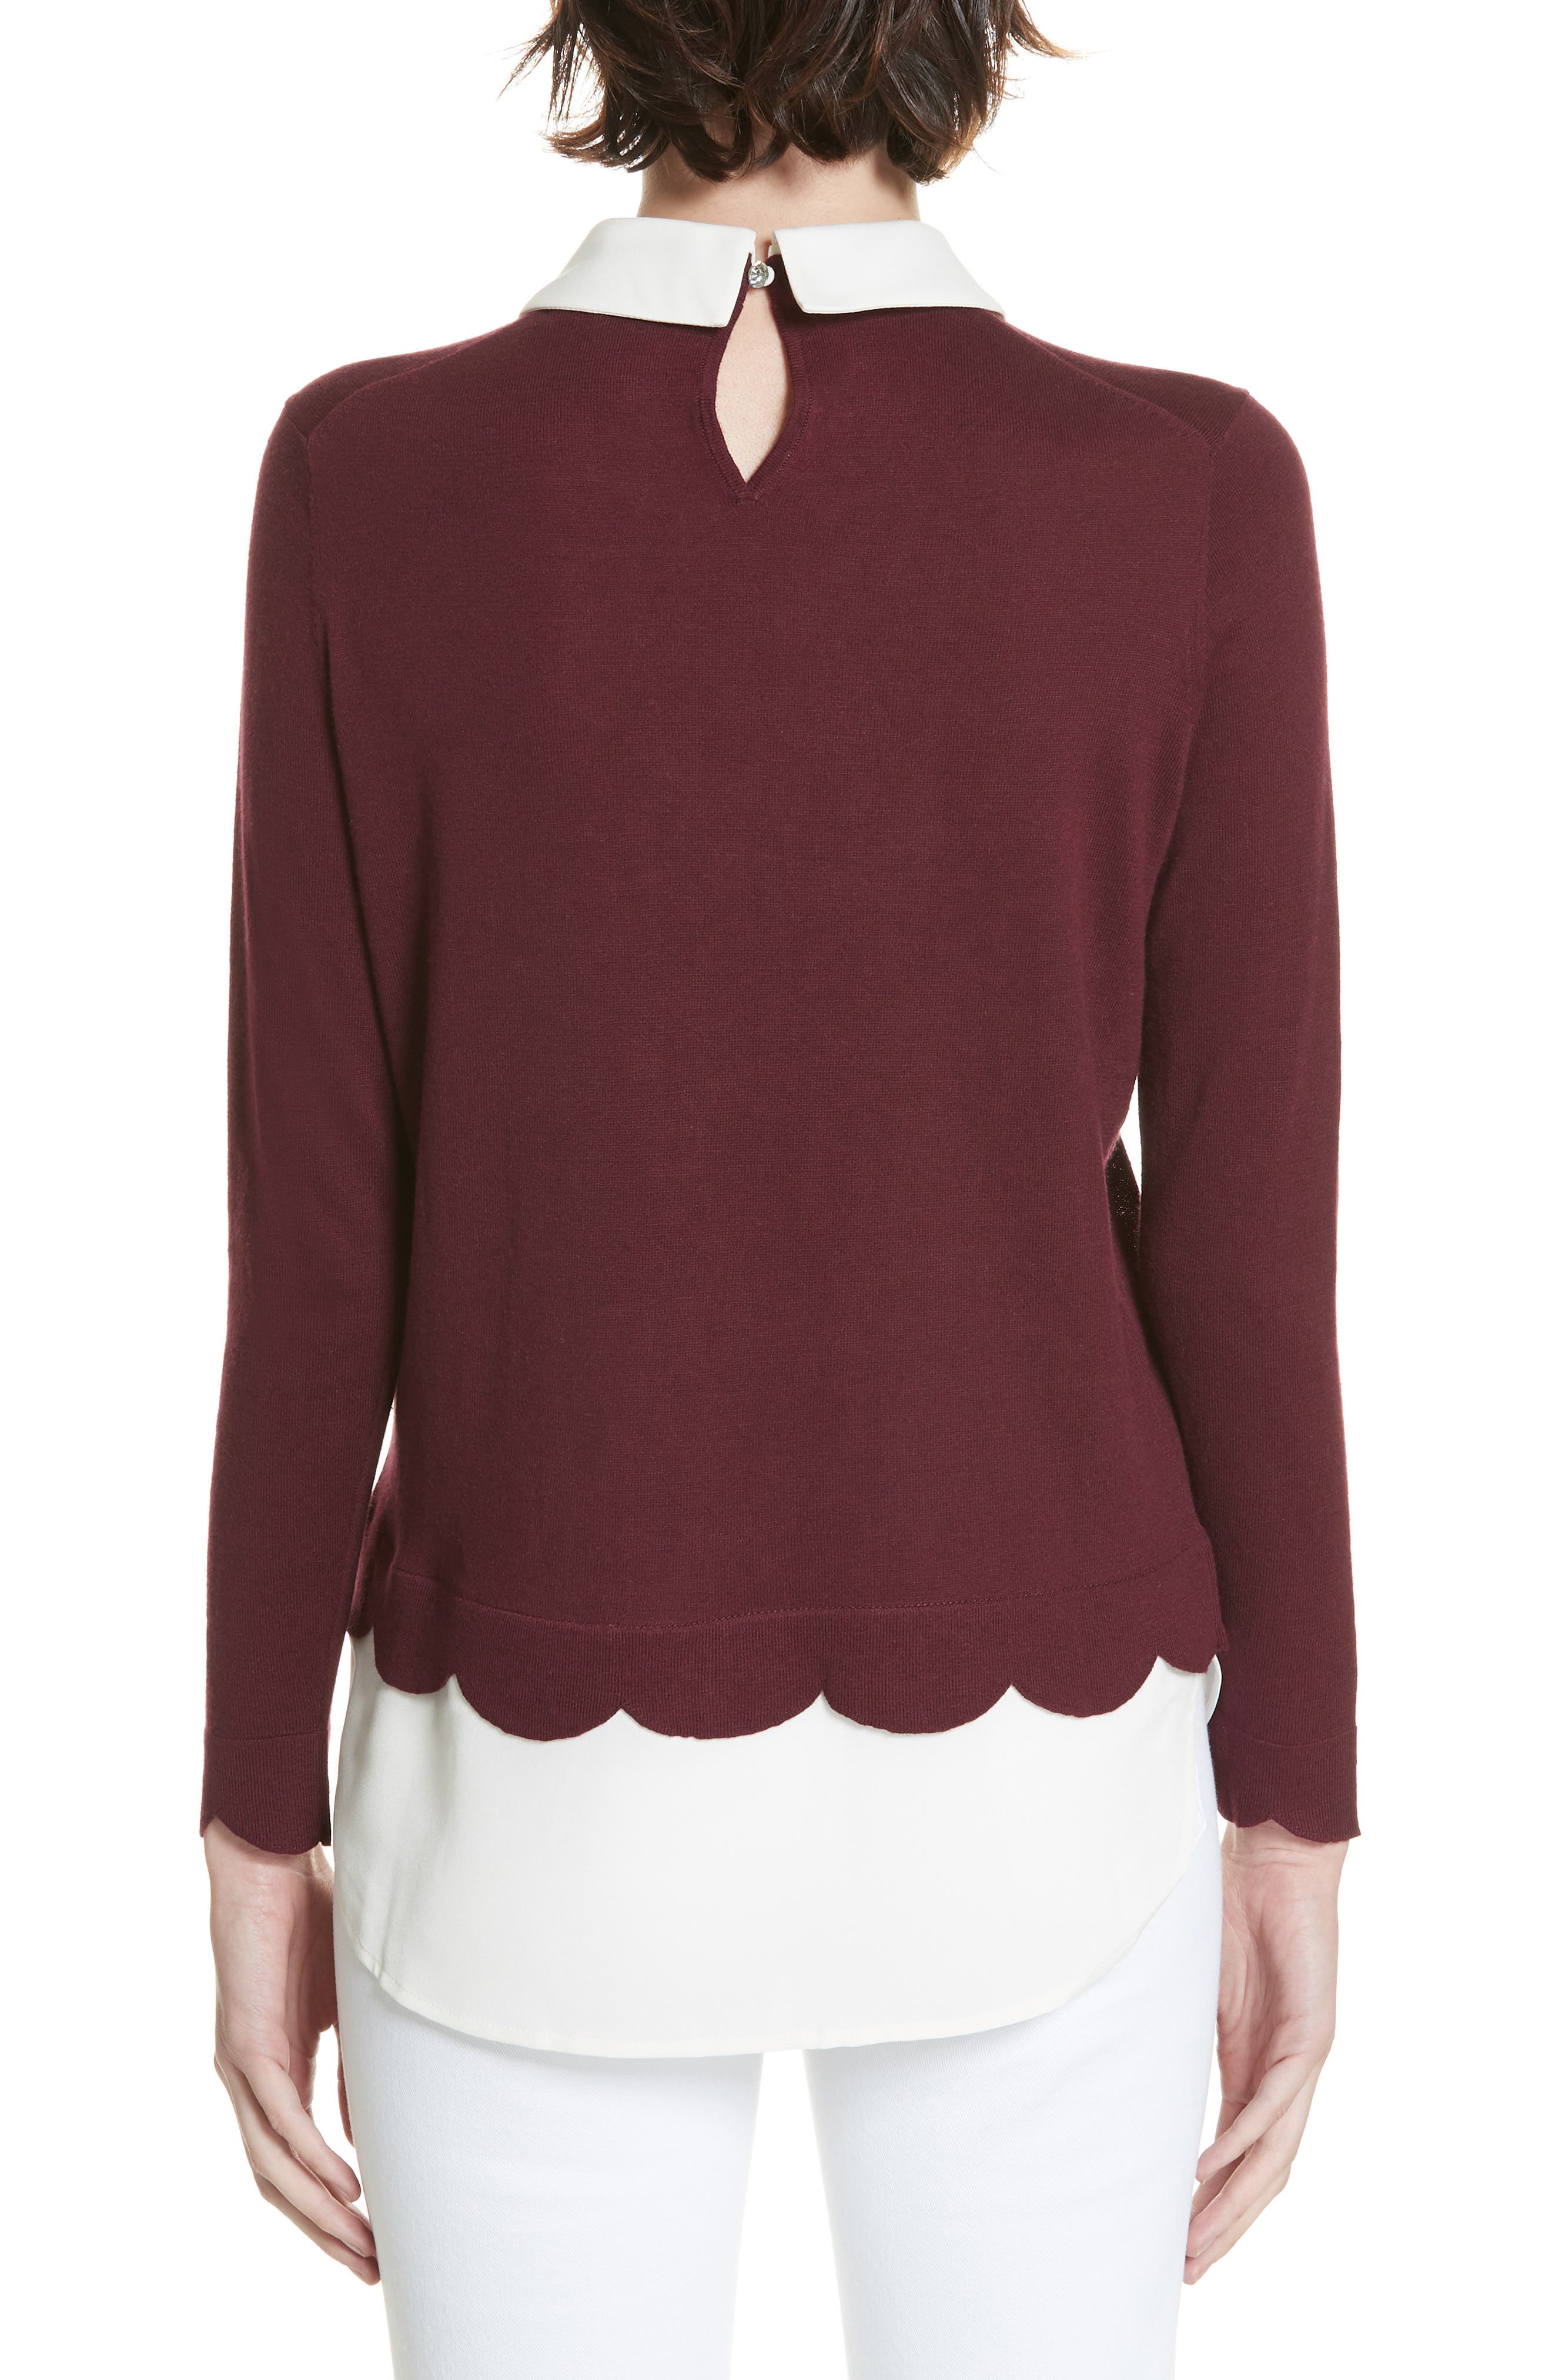 Suzaine Layered Sweater,                             Alternate thumbnail 2, color,                             MAROON